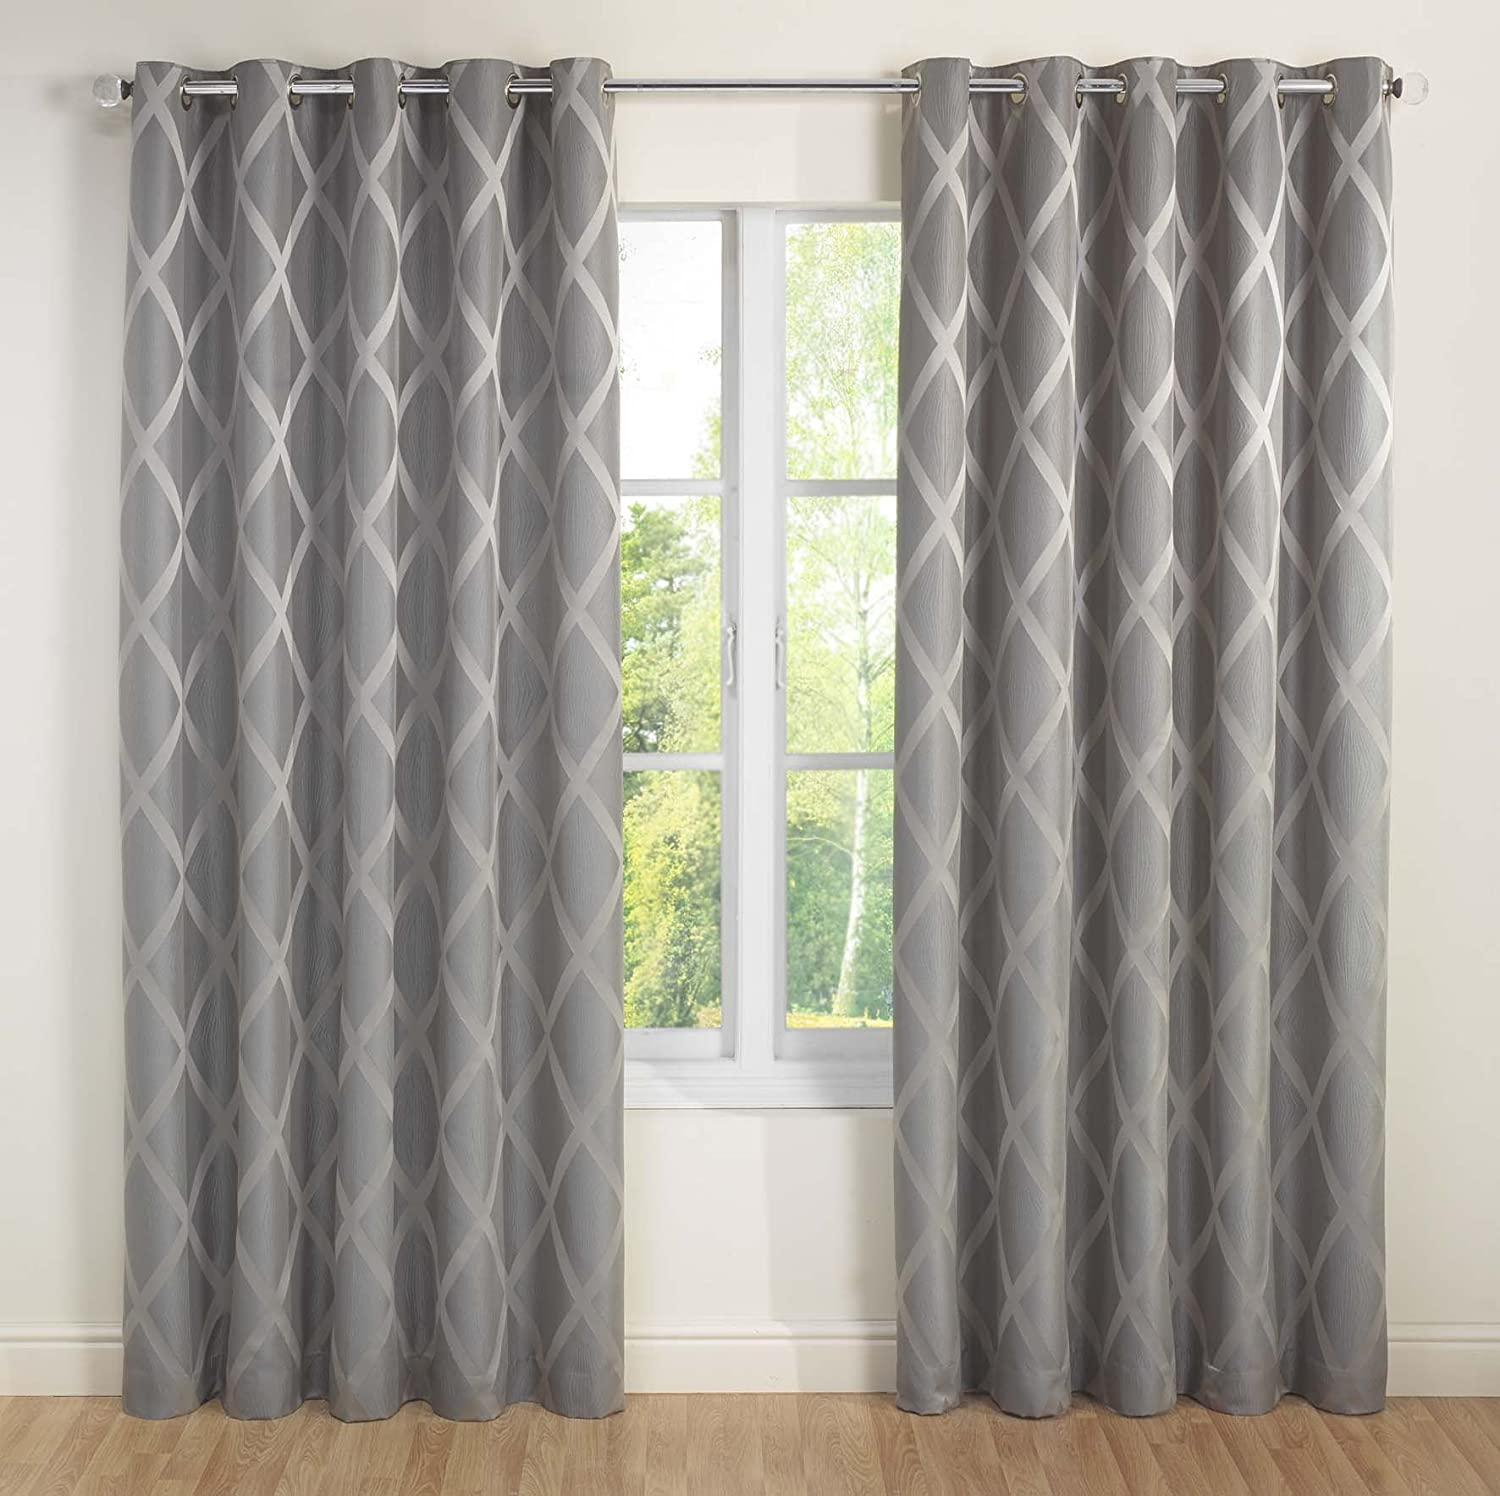 curtains along robust window vapimf shower design curtain sheer ivy panels corner drapery dw large inch with blackout curtai perky gallery no together plans image of size single